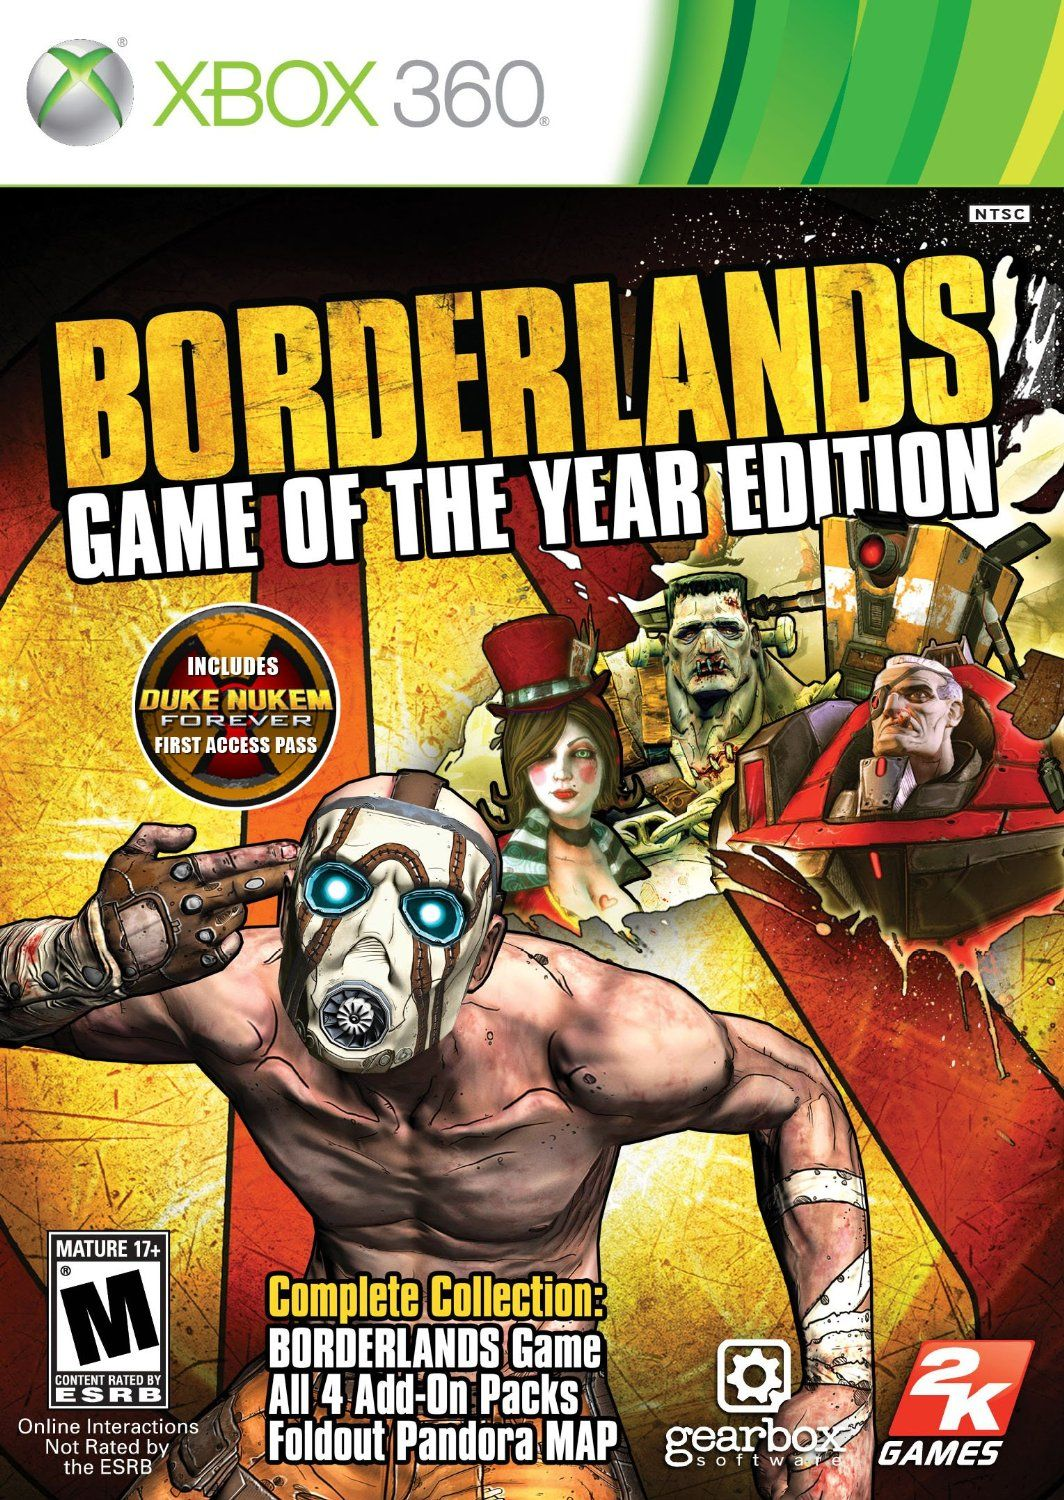 Borderlands for the Xbox 360  | MPL Video Game Collection | Xbox 360